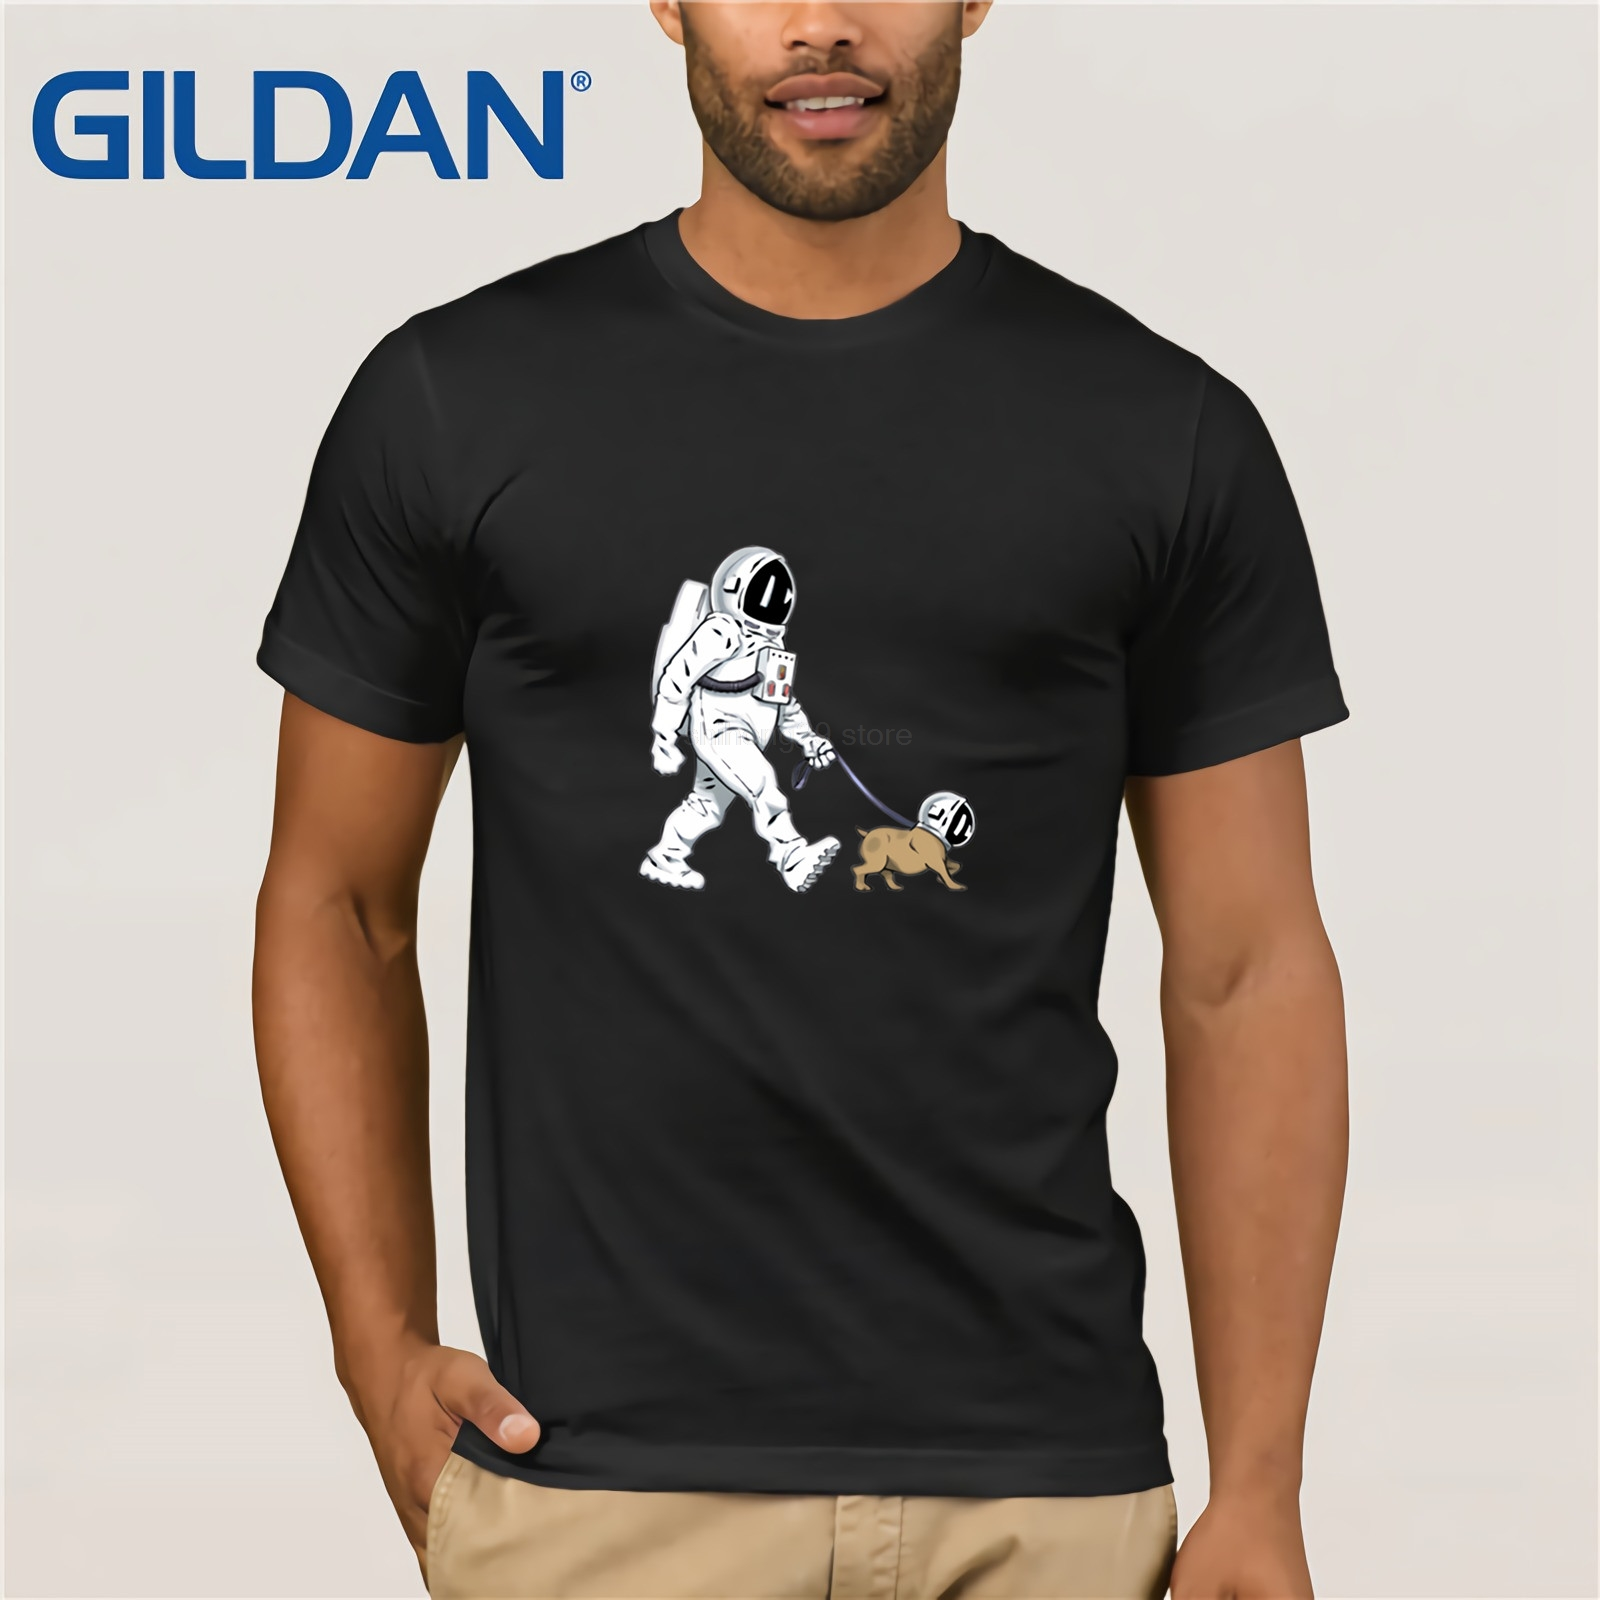 The Walking Dead T Shirt Men Spacex Spaceship Tshirt Astronaut Dog Cool T-Shirt Rocket Tshirt Homme Starmanx Space Dog Tees Tops image